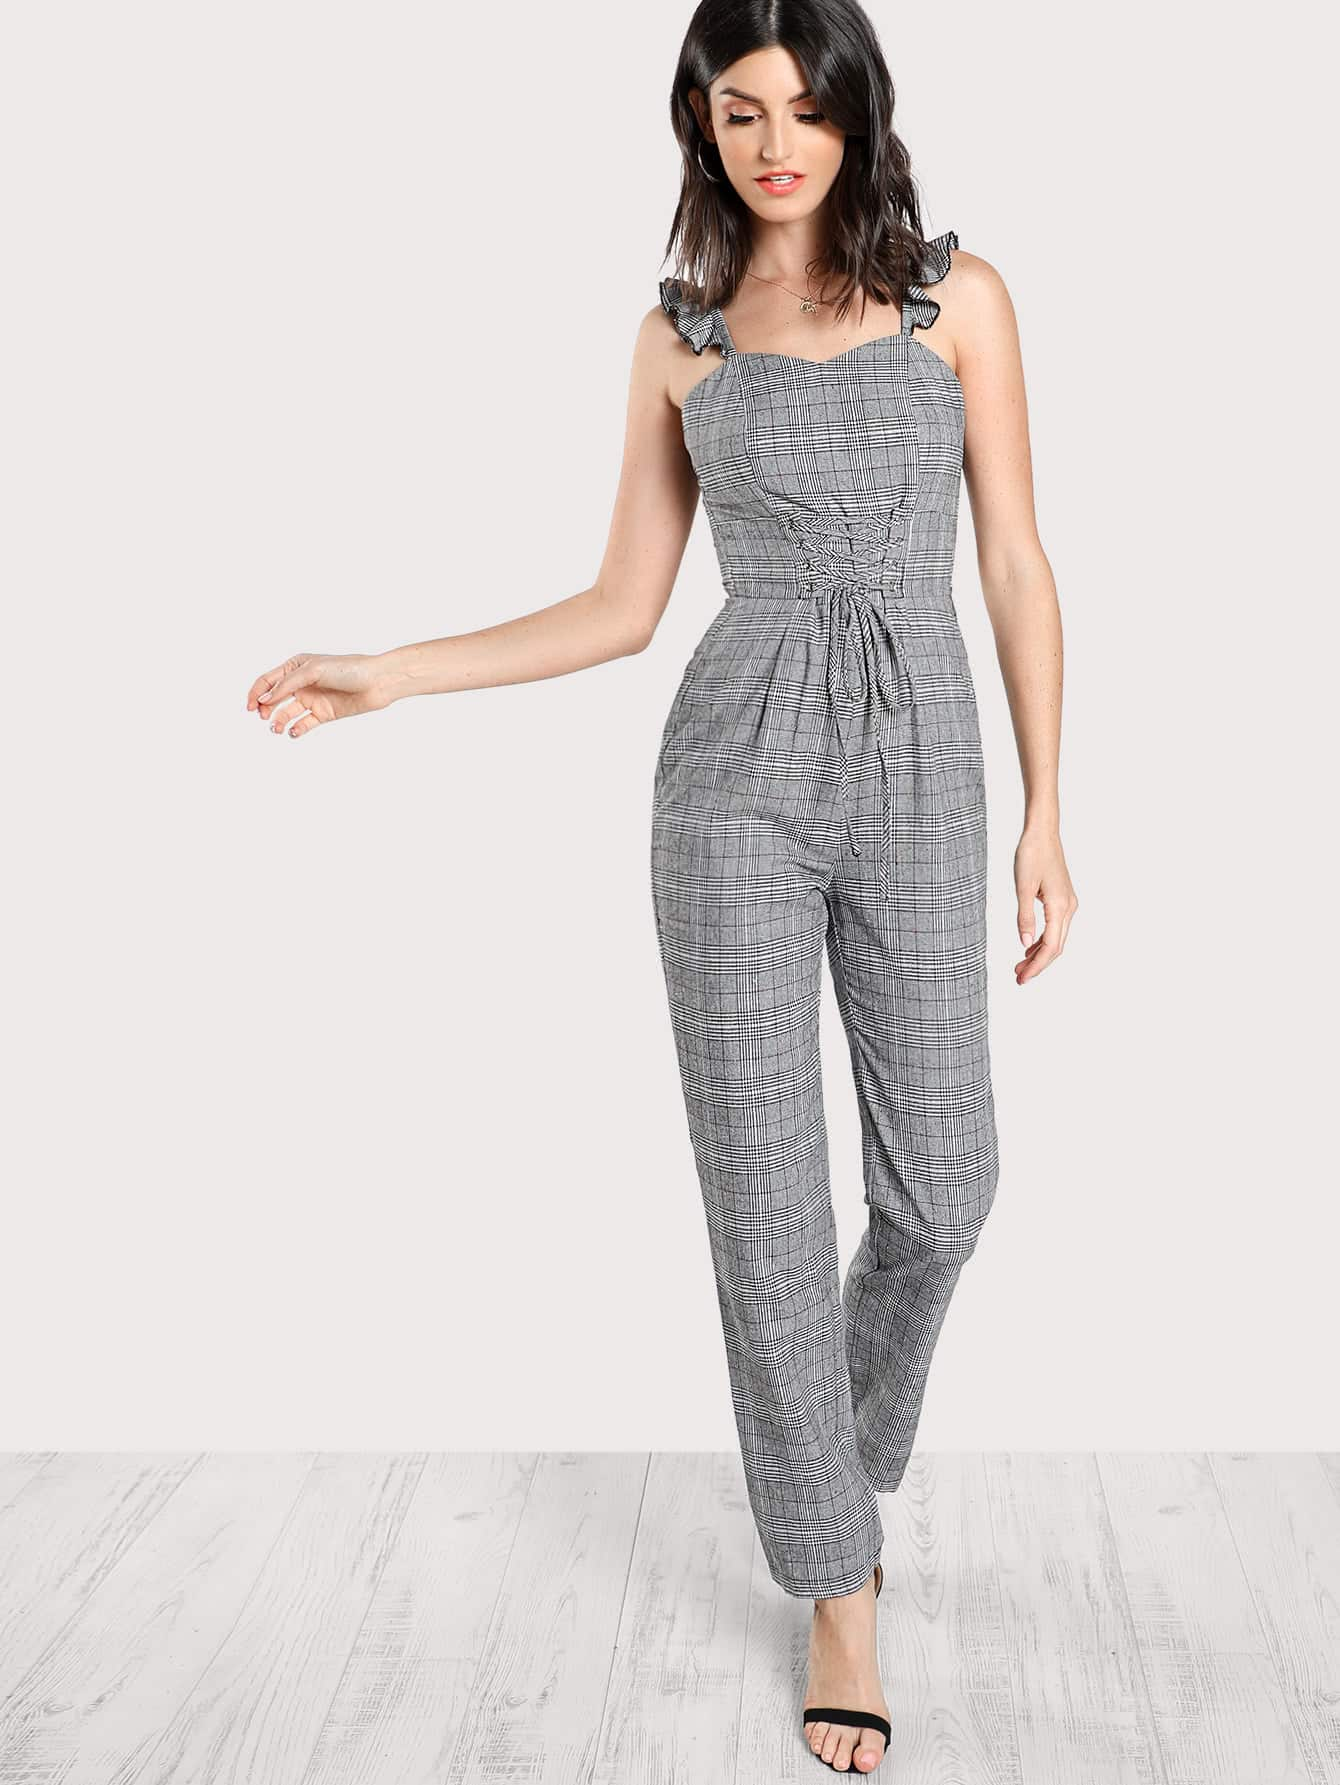 Frilled Strap Plaid Tailored Jumpsuit жакет quelle ashley brooke by heine 71012